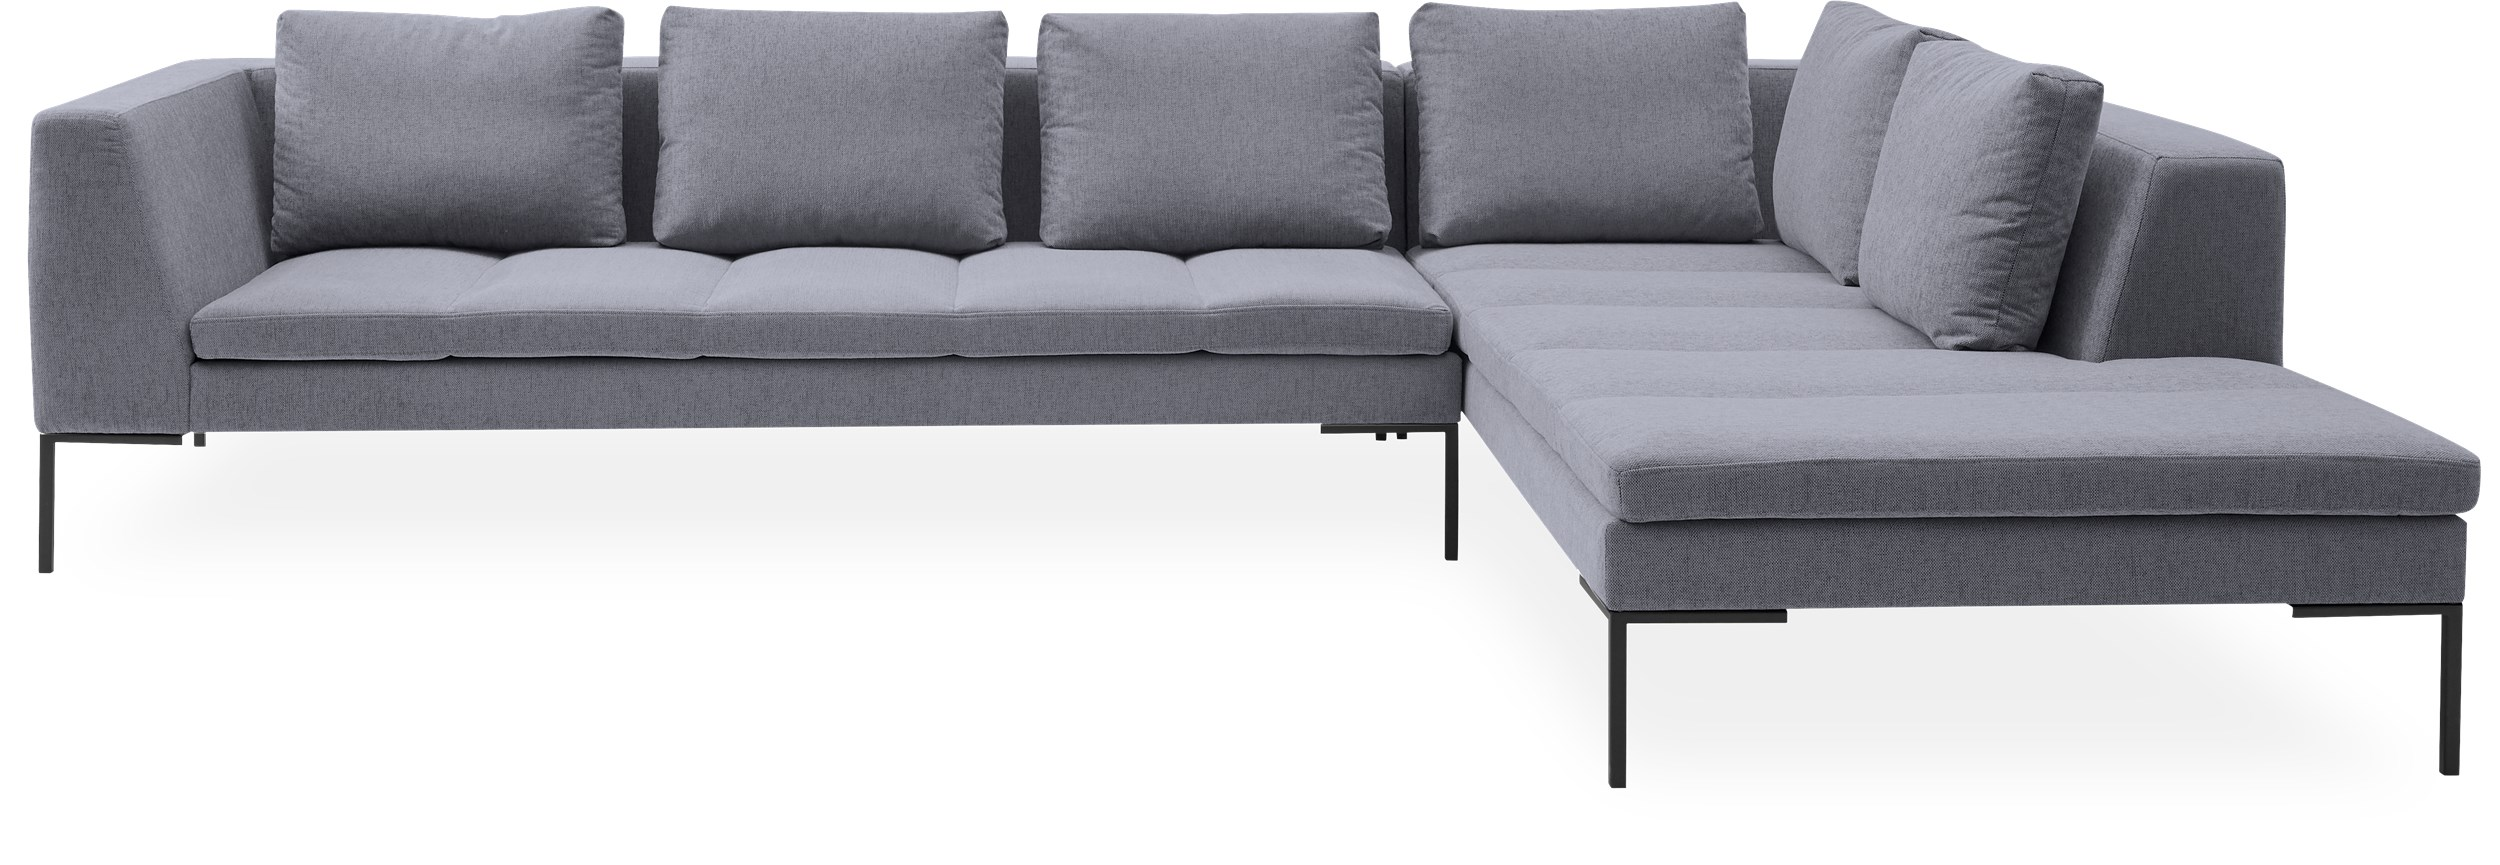 Mirano Hjørnesofa med pufafslutning - Copparo 1461 Light Grey stof og ben i sort metal